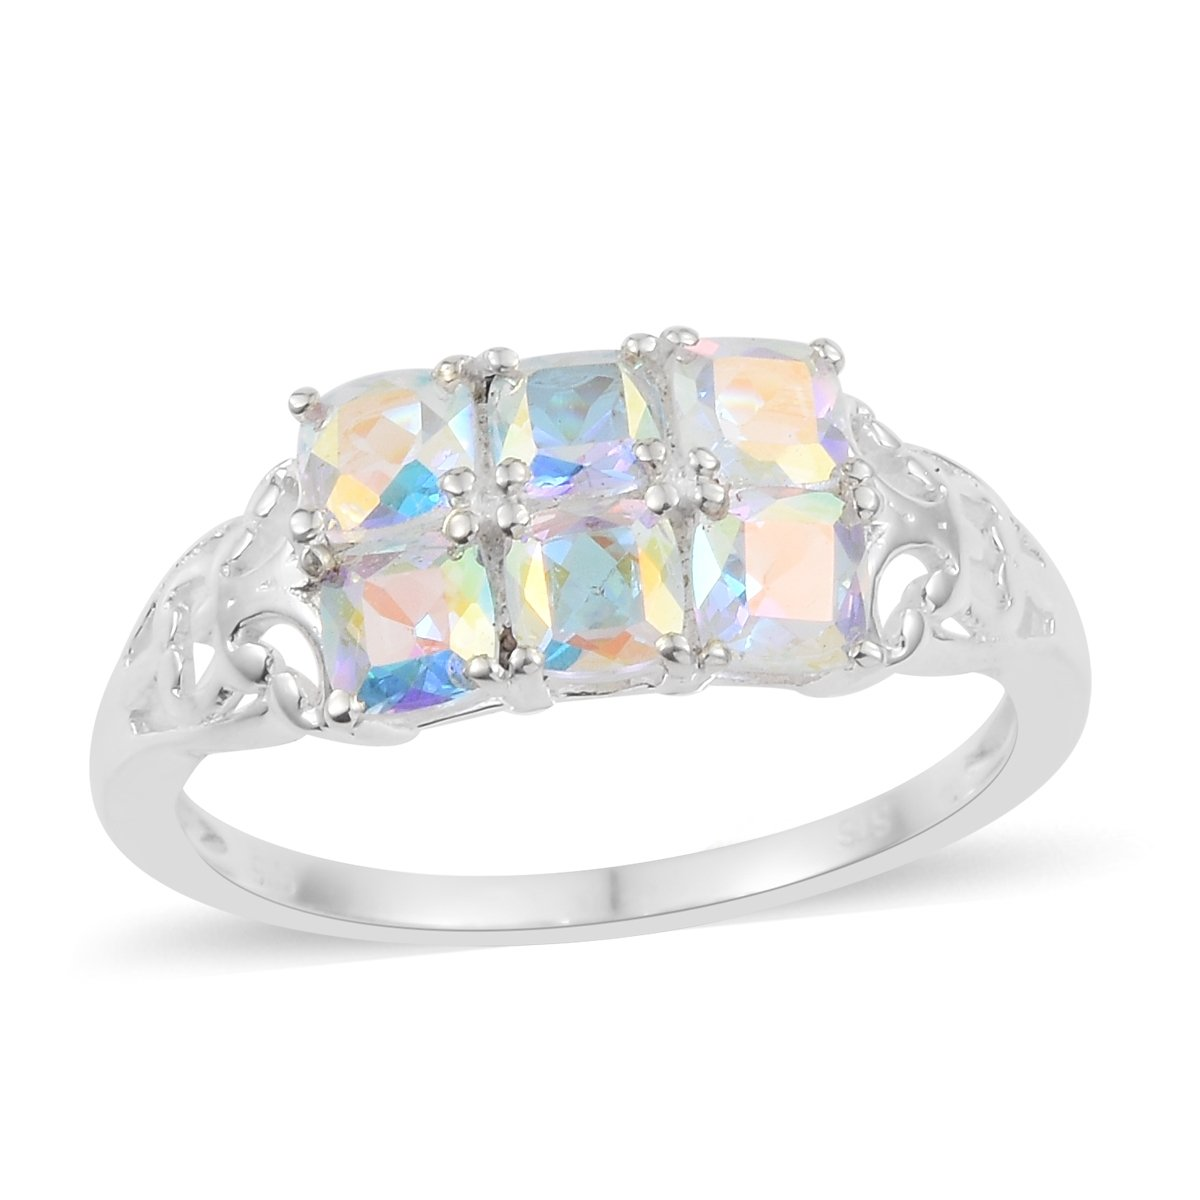 925 Sterling Silver 1.7 Cttw Cushion Mercury Mystic Coated Topaz Fashion Ring For Women Size 7